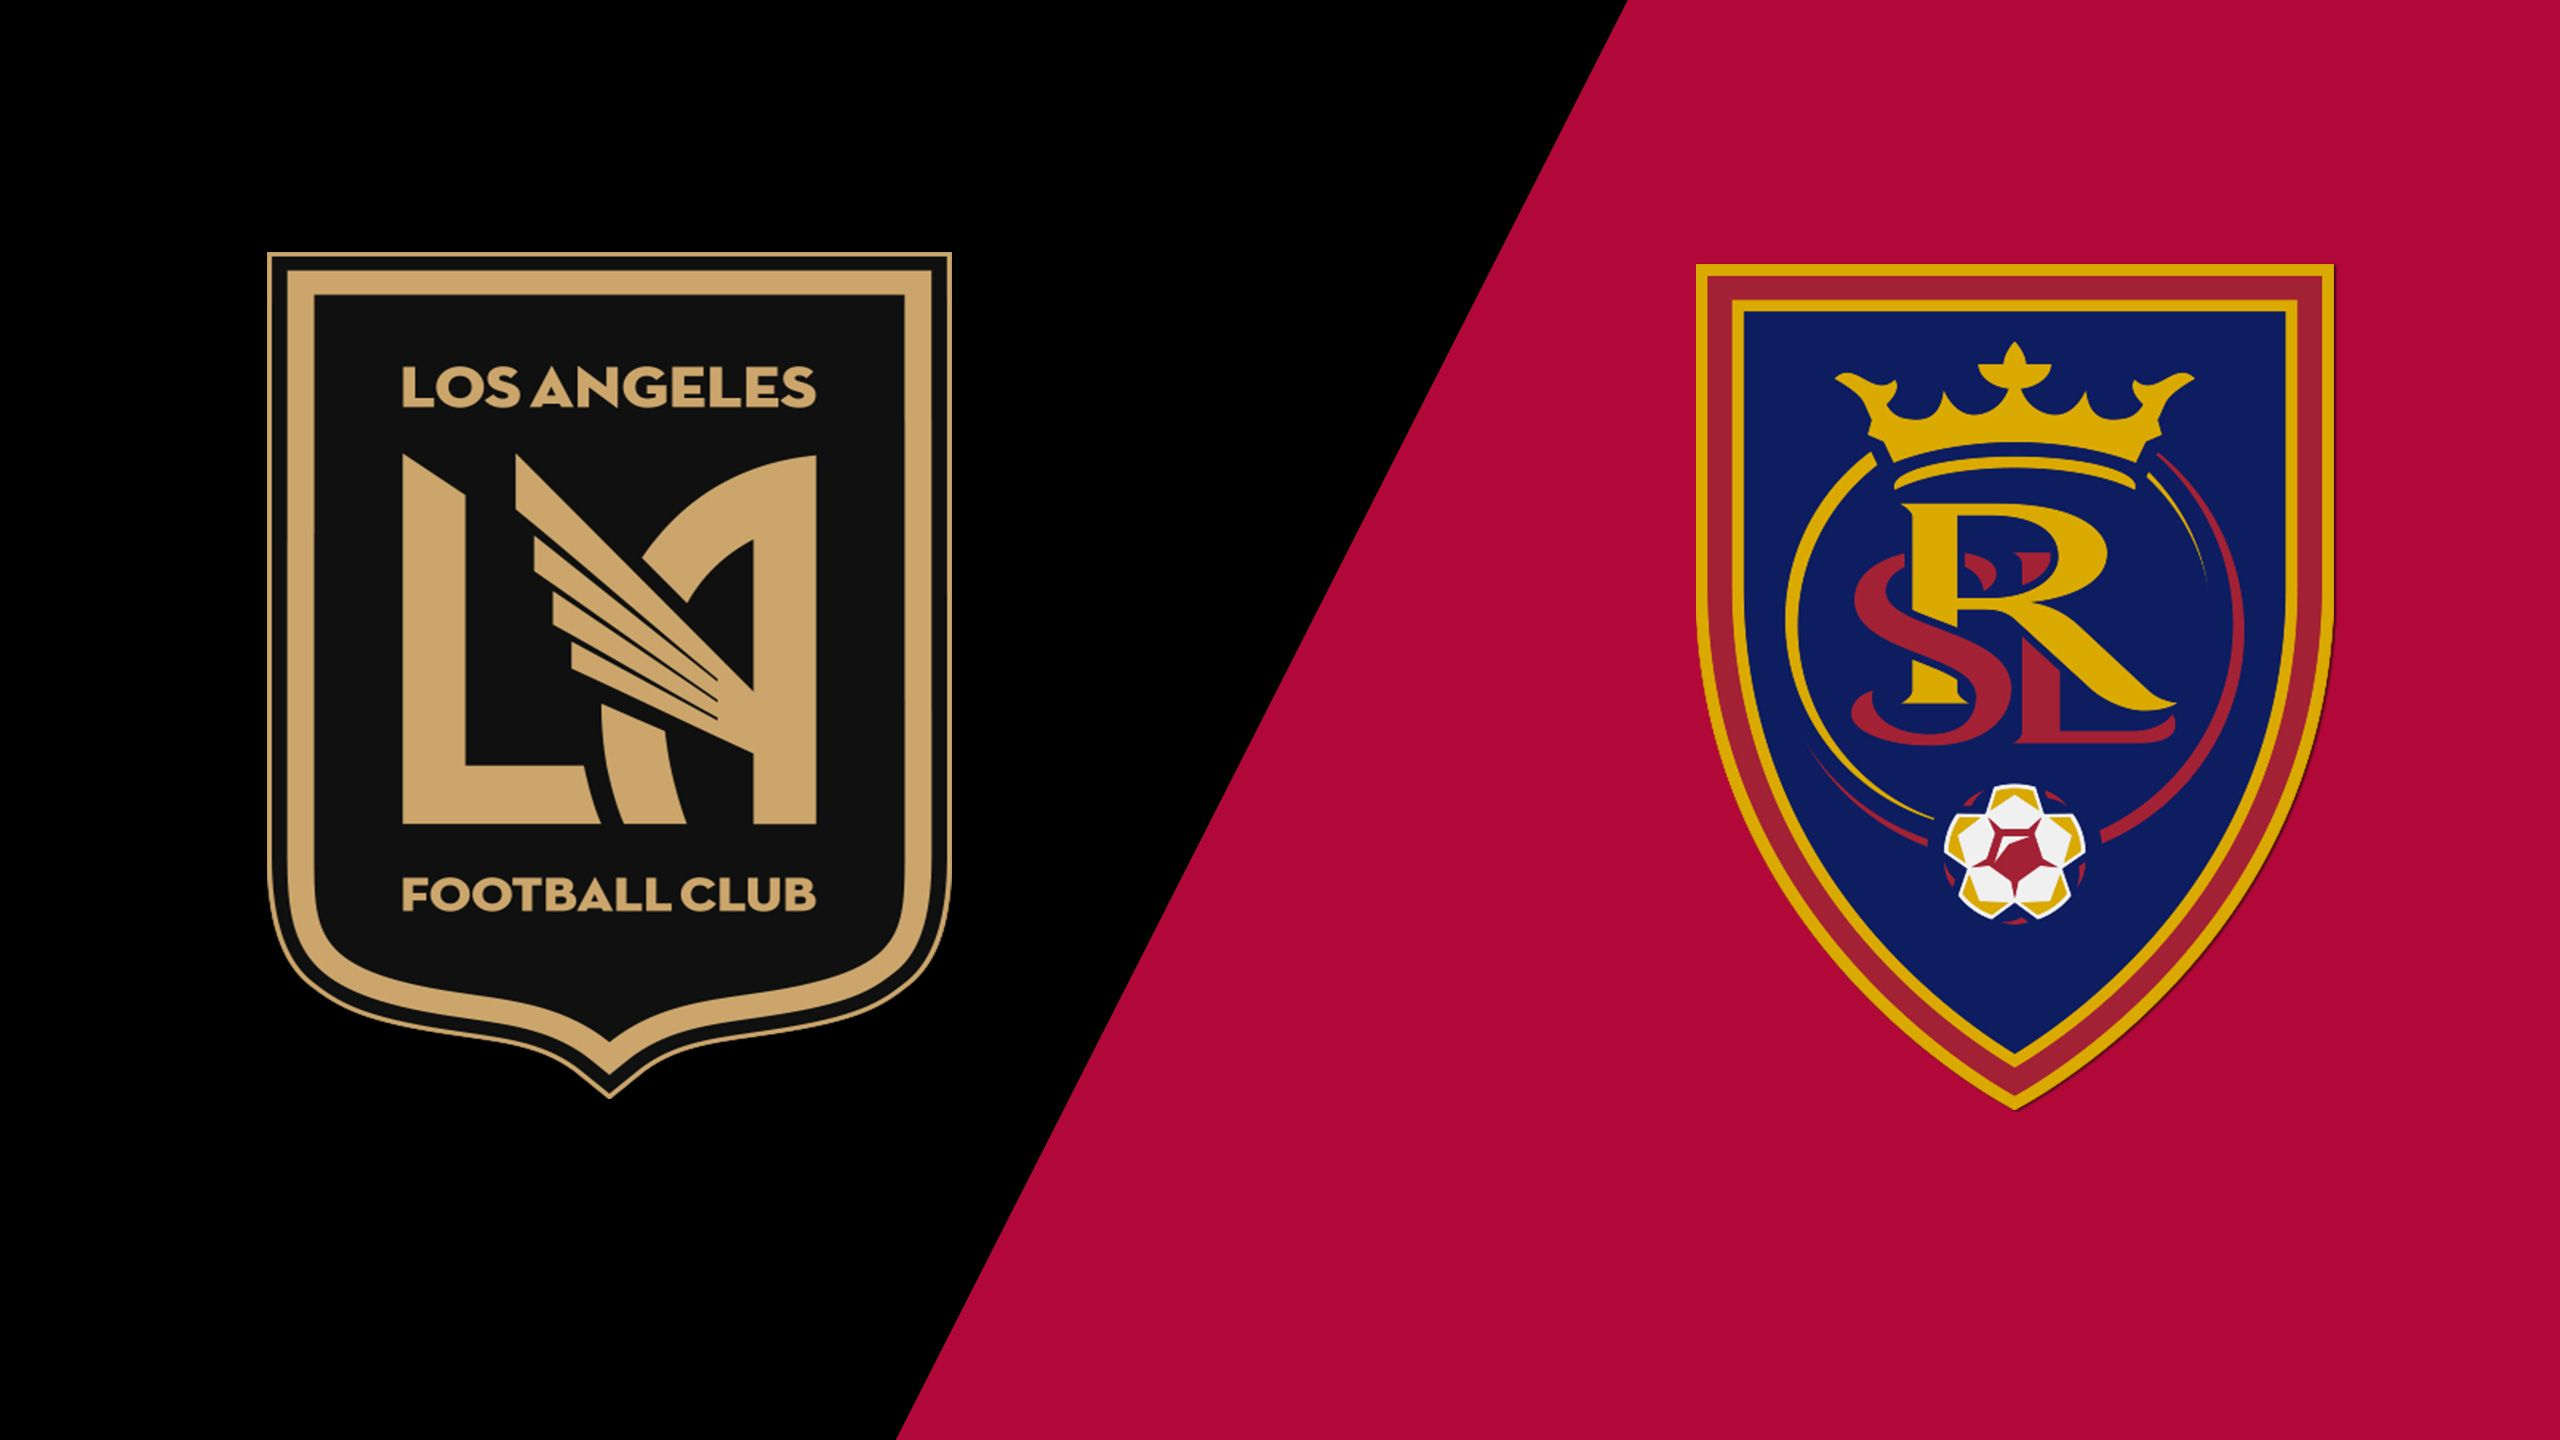 In Spanish - LAFC vs. Real Salt Lake